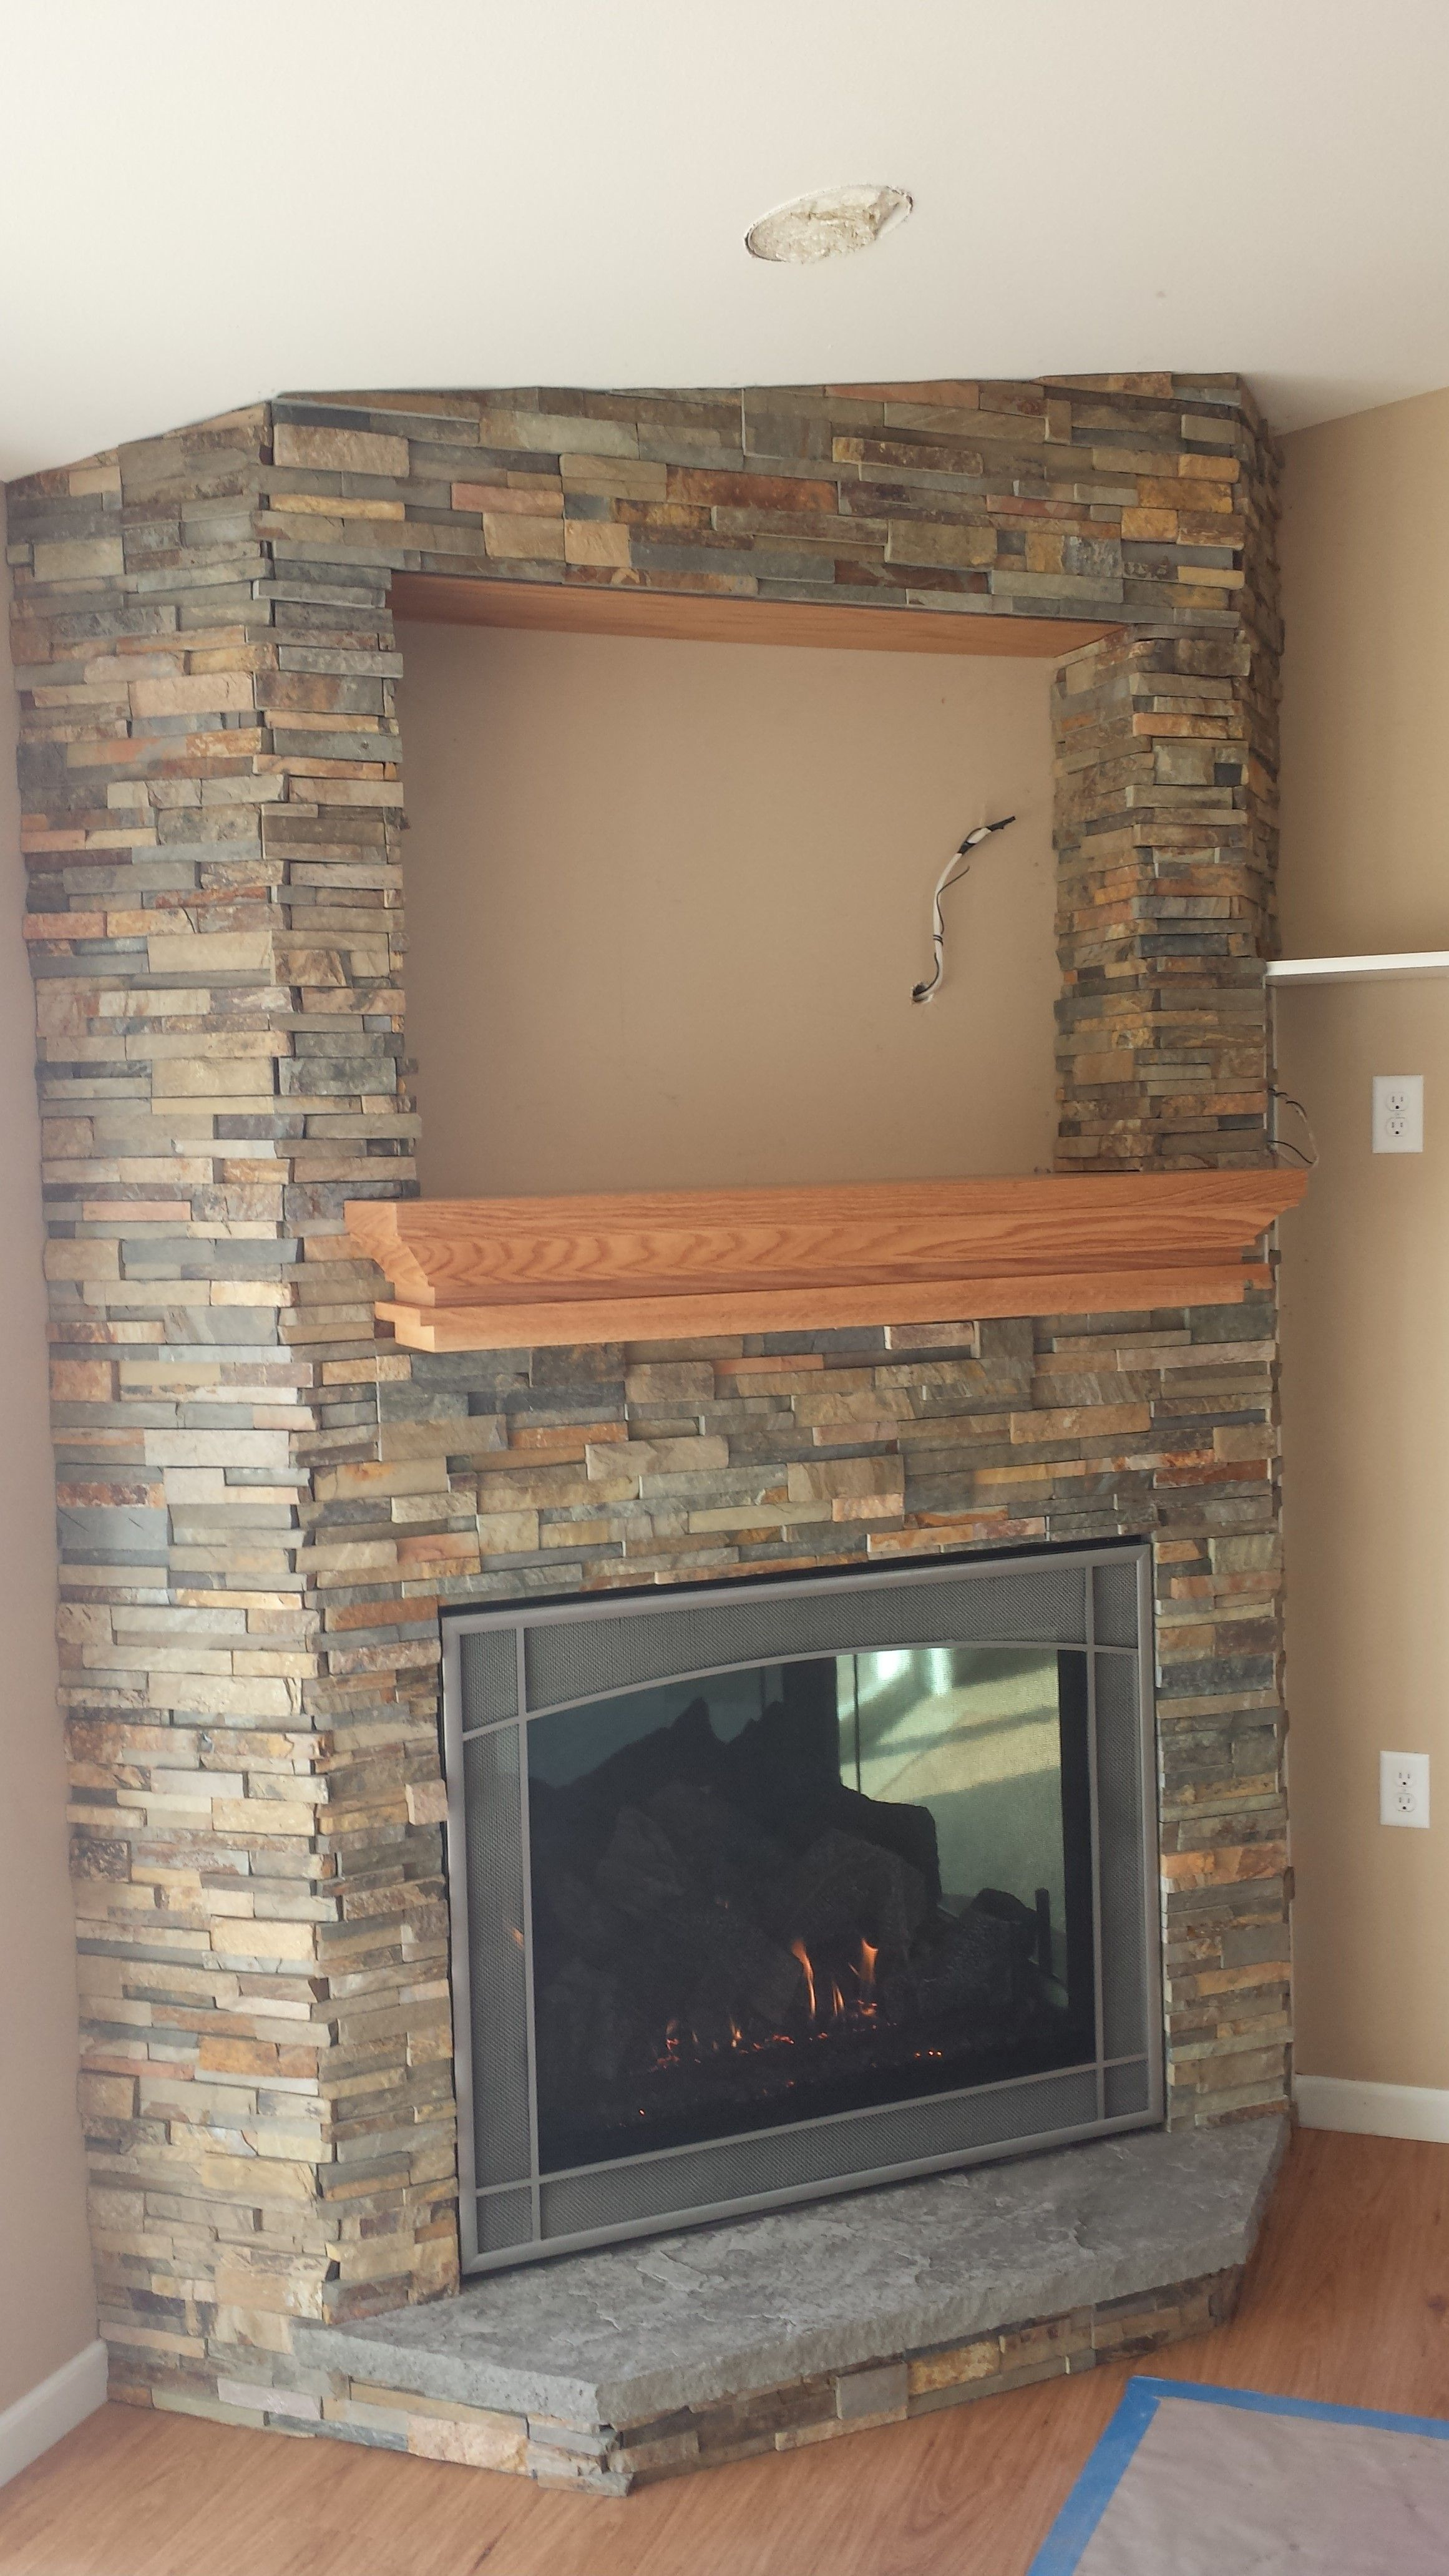 New Home Construction We Designed And Installed The Fireplace